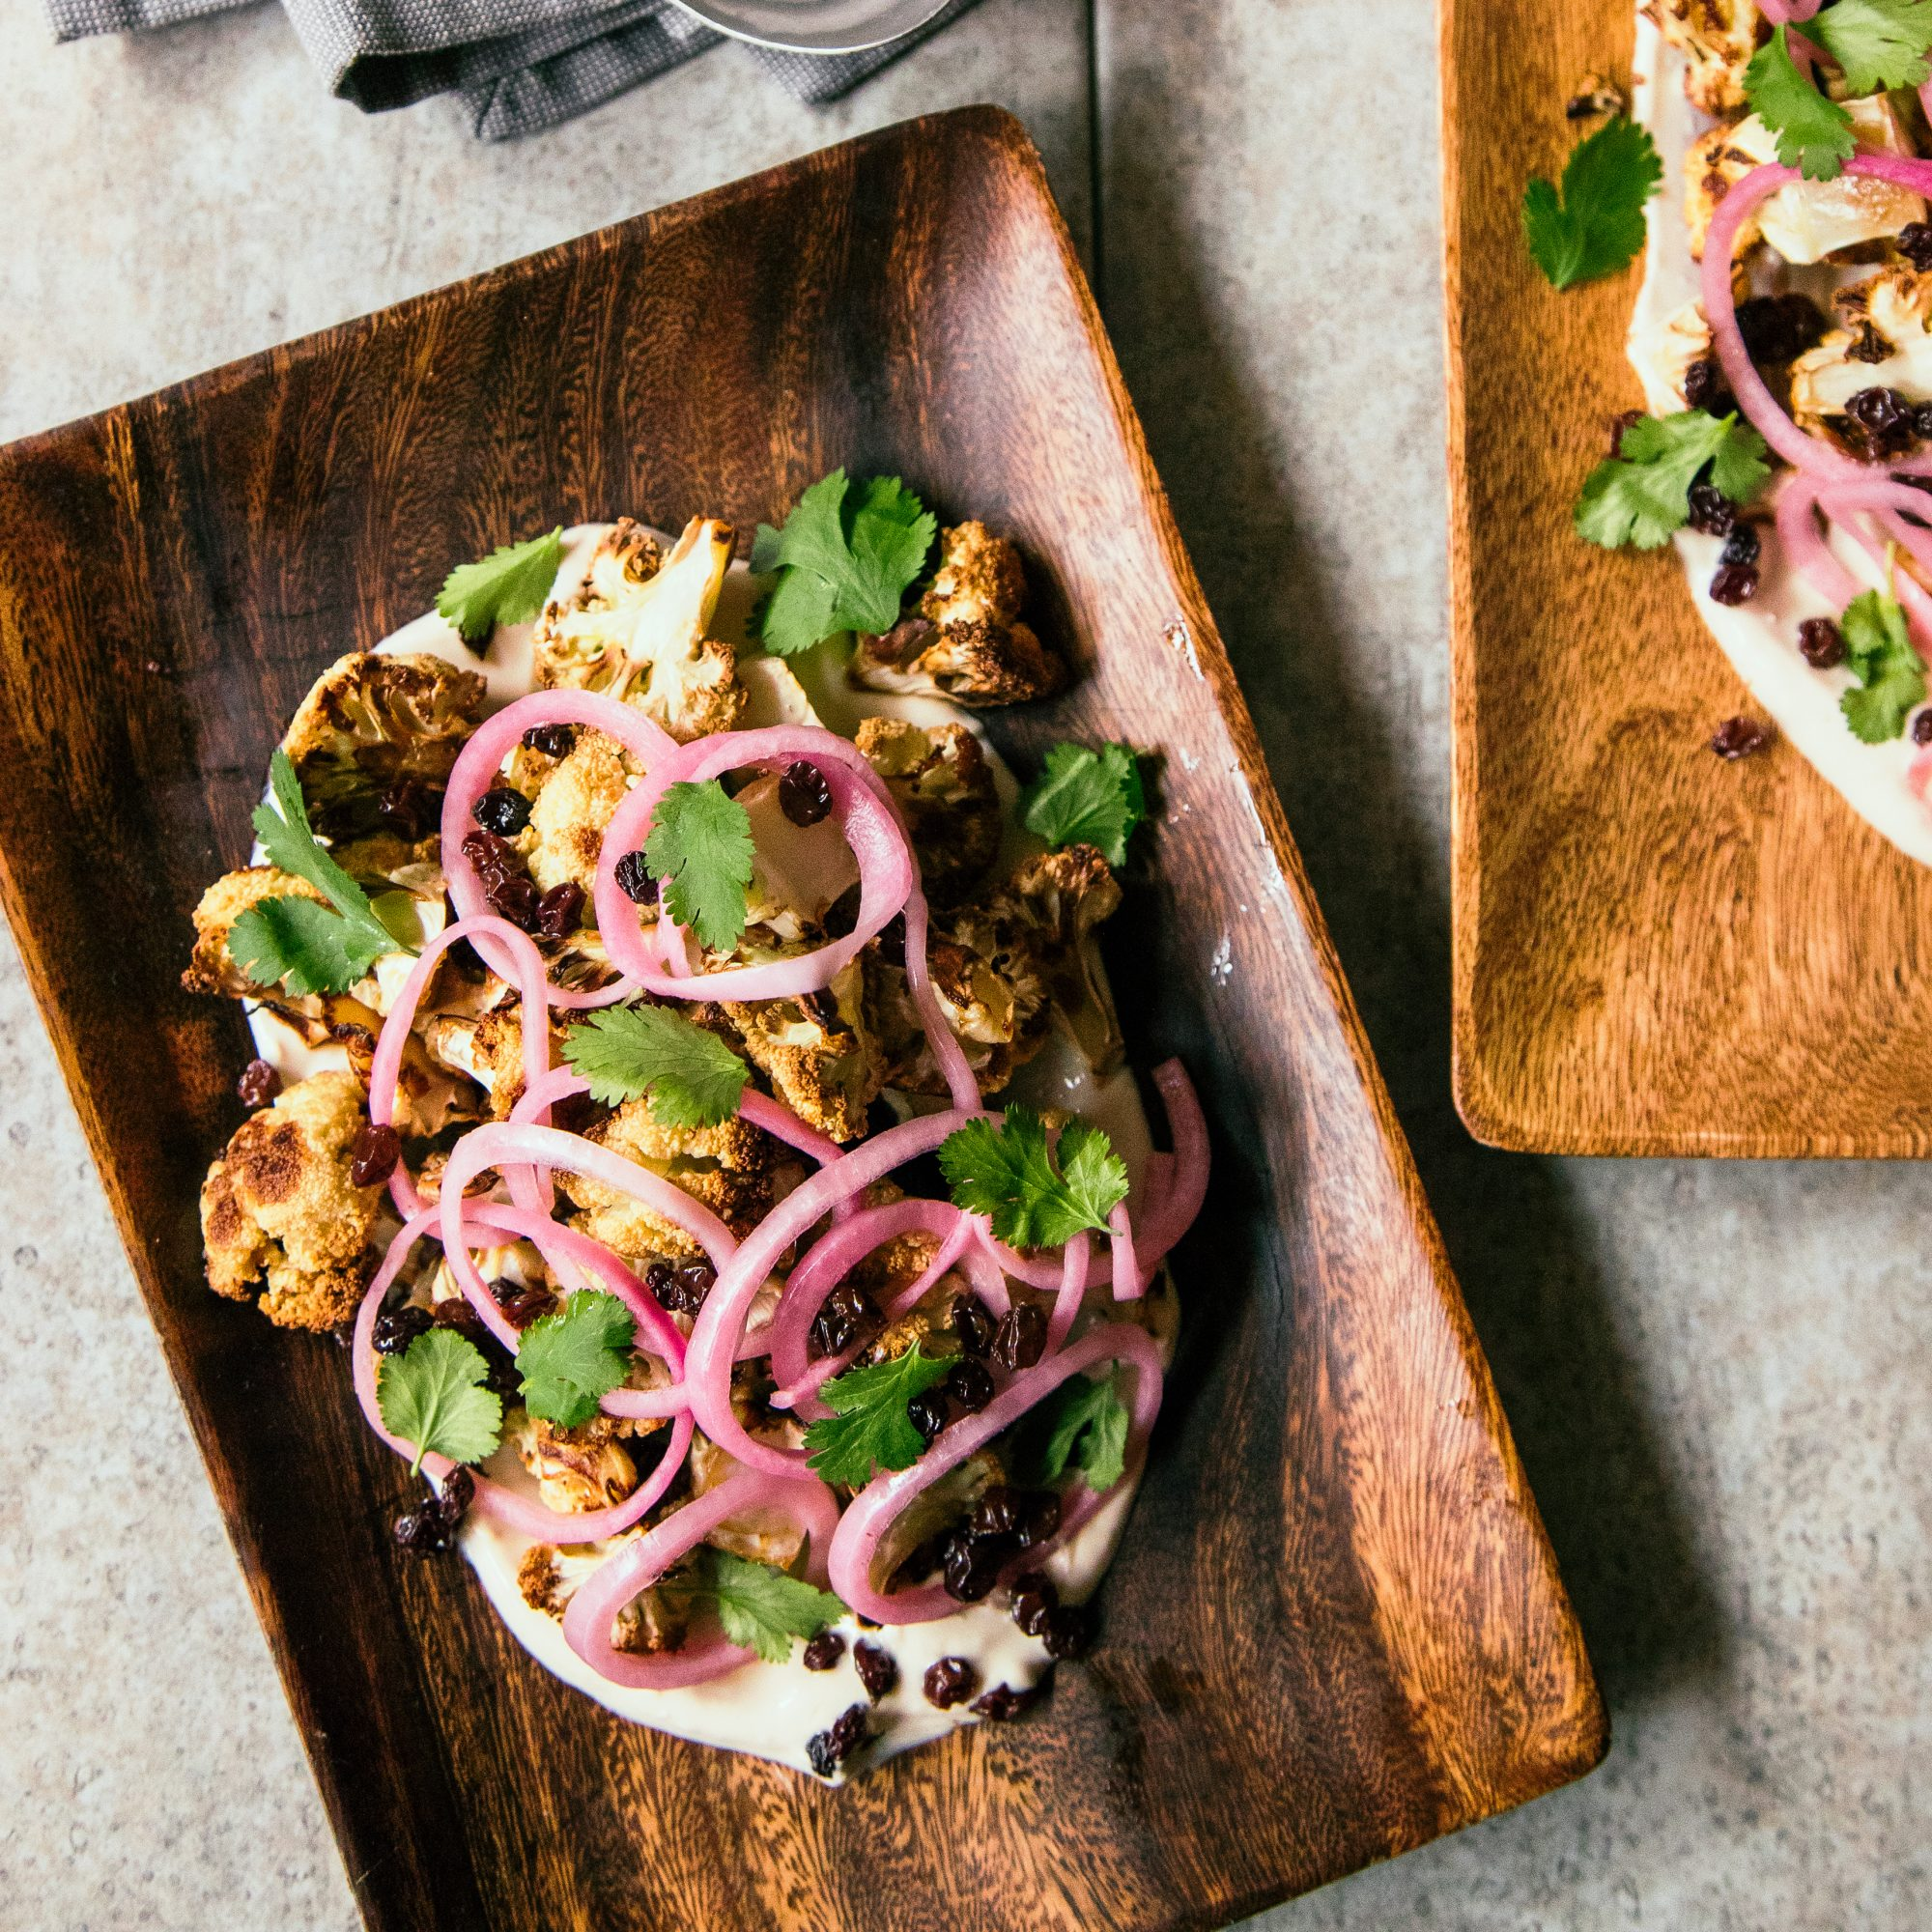 Roasted Cauliflower with Pickled Onion and Yogurt Sauce